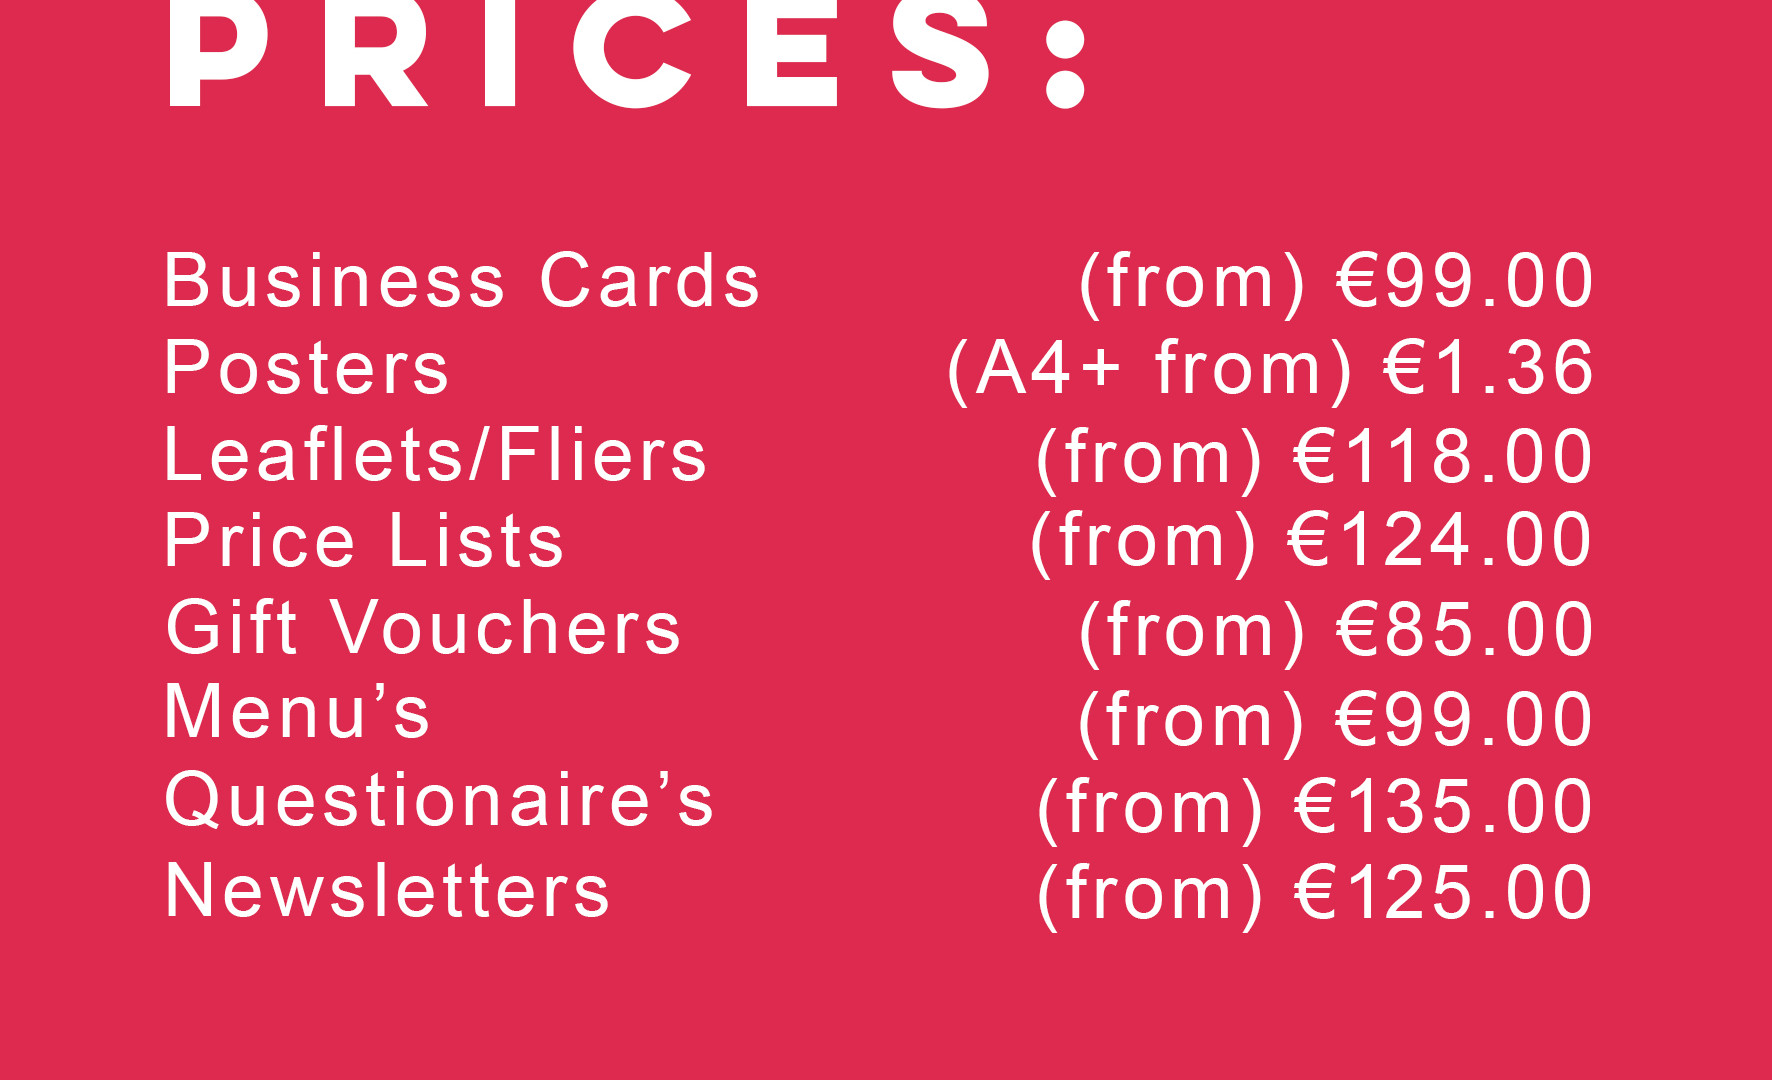 Prices to suit your budget.